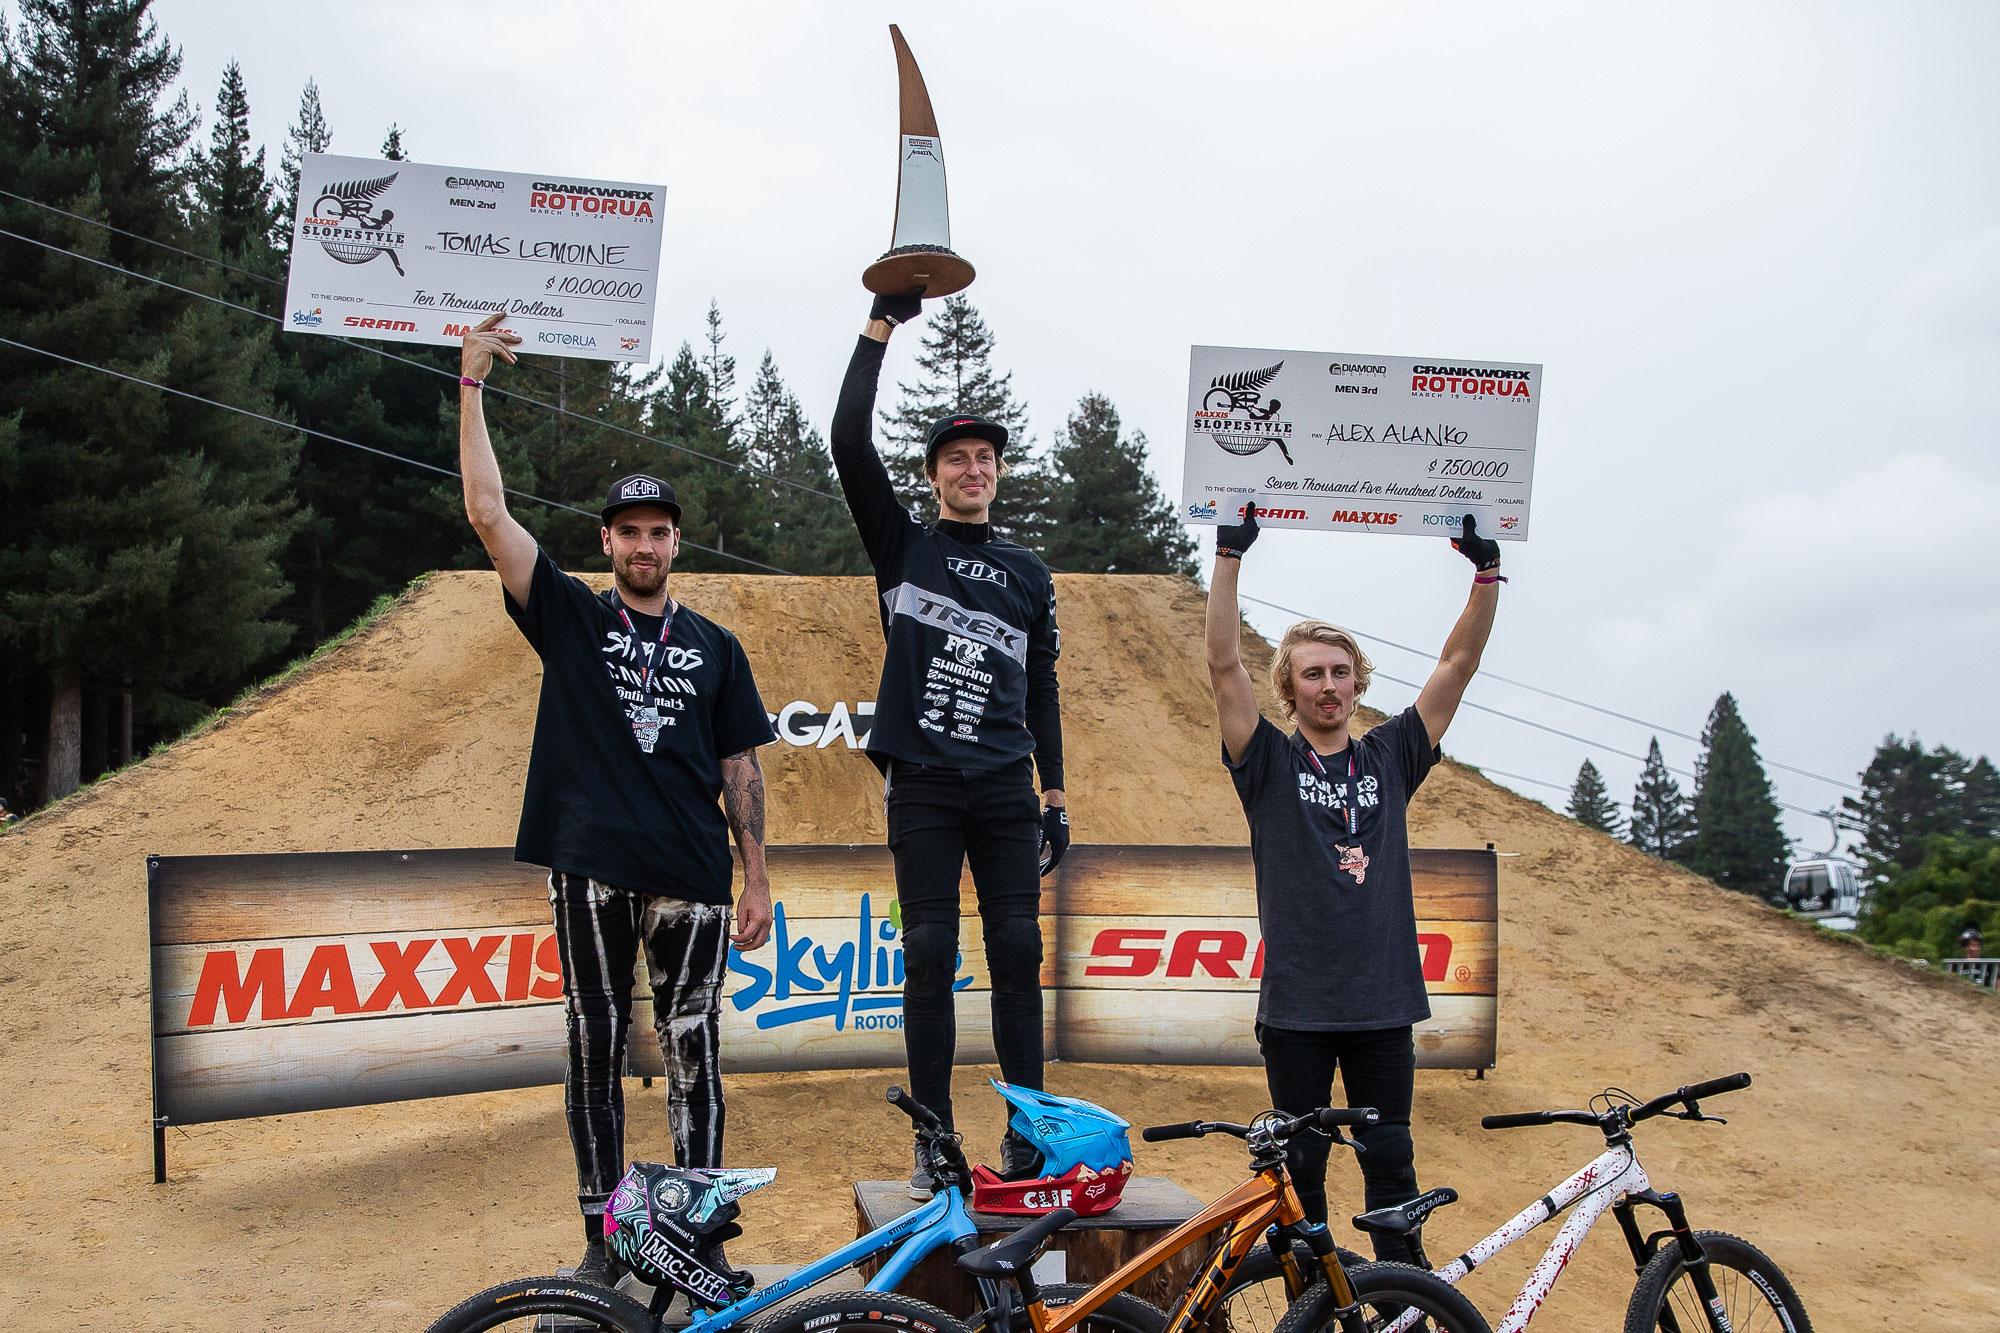 Maxxis Slopestyle in Memory of McGazza